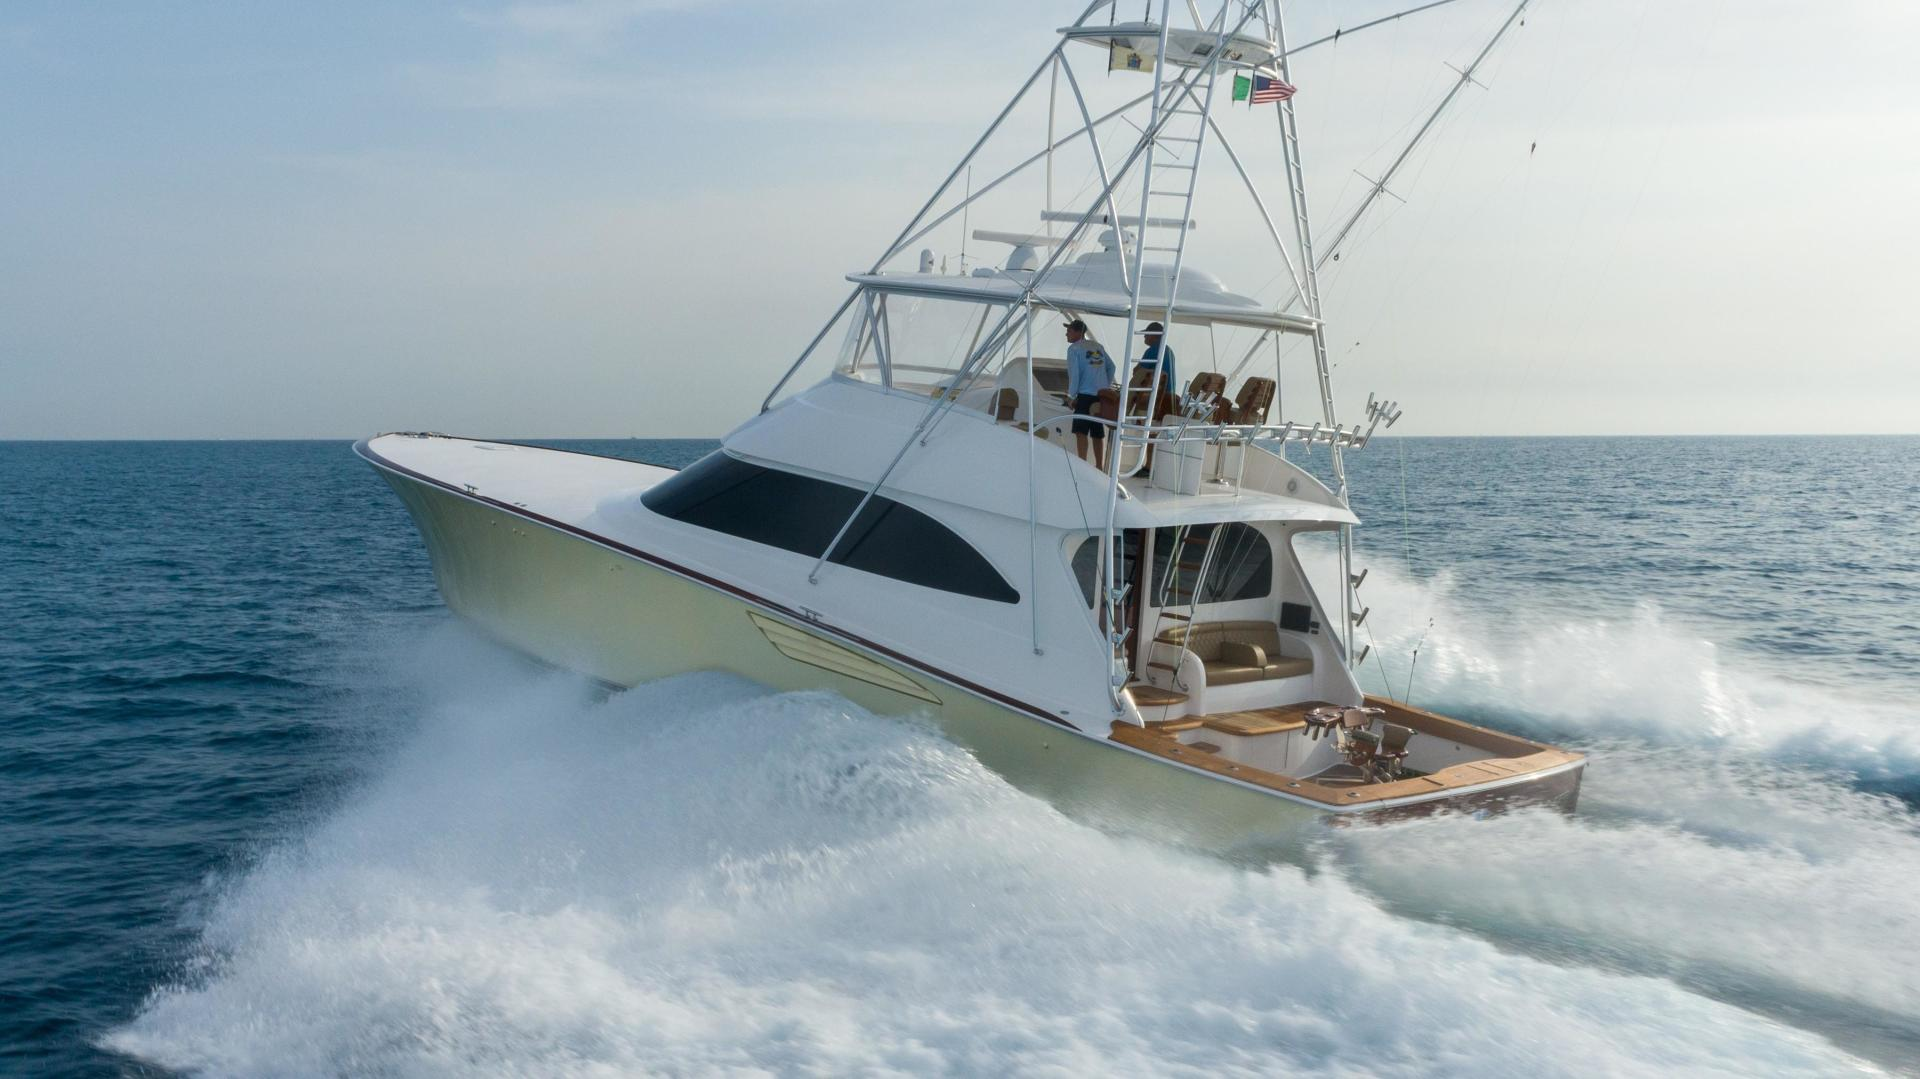 Viking-Sport Fish 2015-PIPE DREAMER Brielle-New Jersey-United States-1473175 | Thumbnail